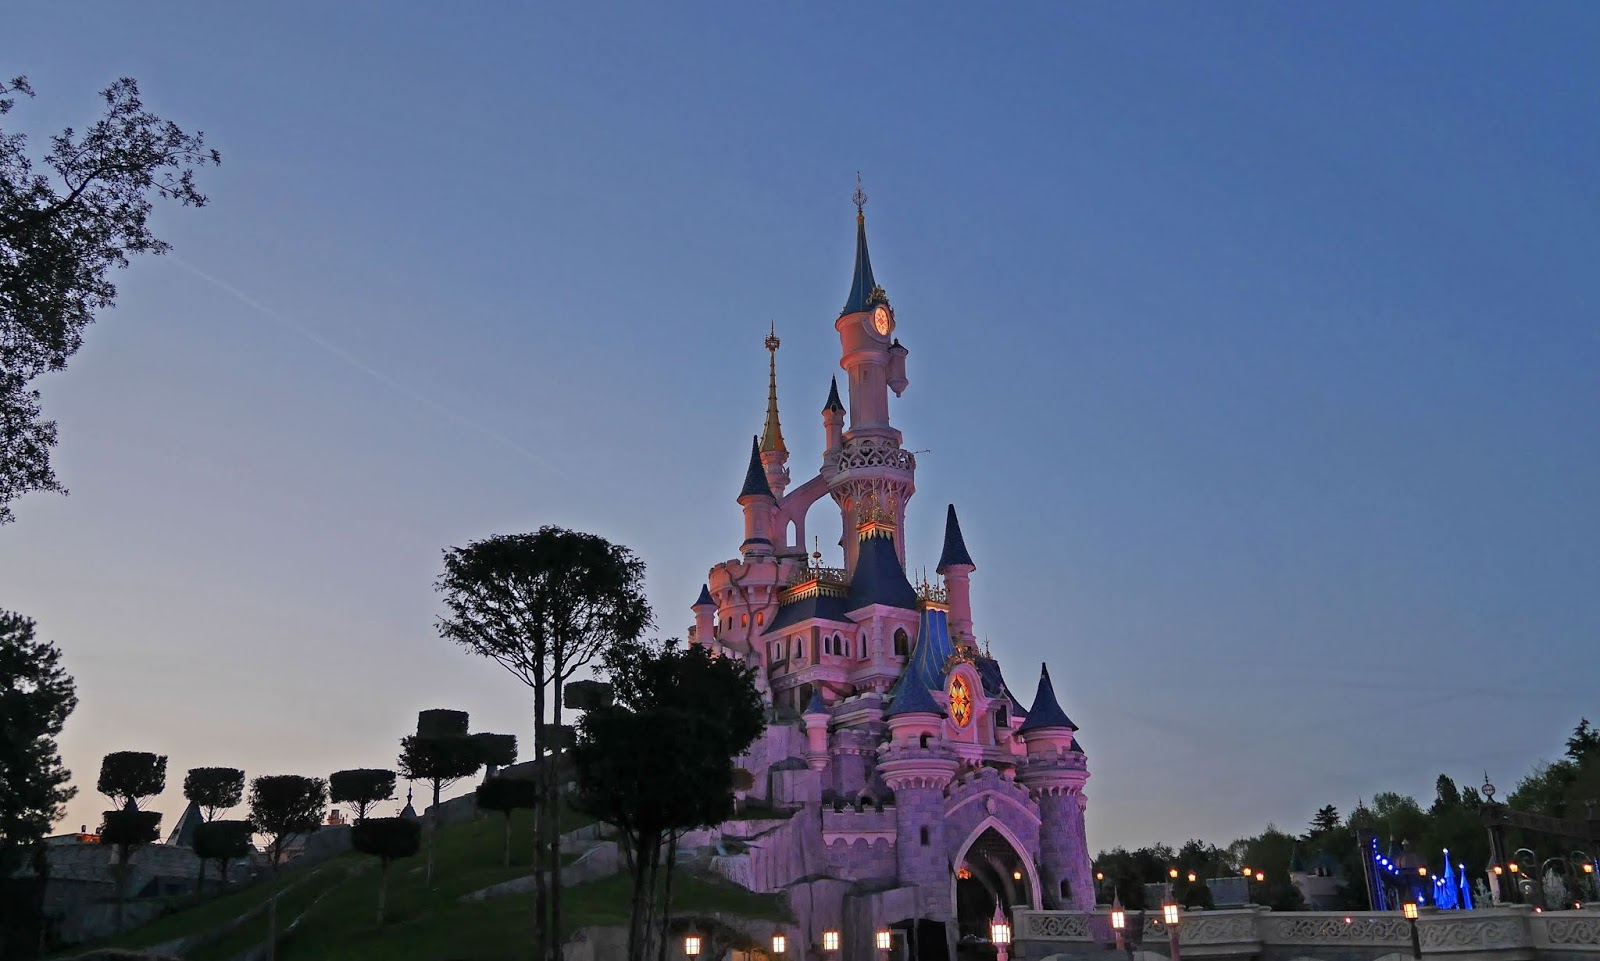 Disneyland Paris Castle at night